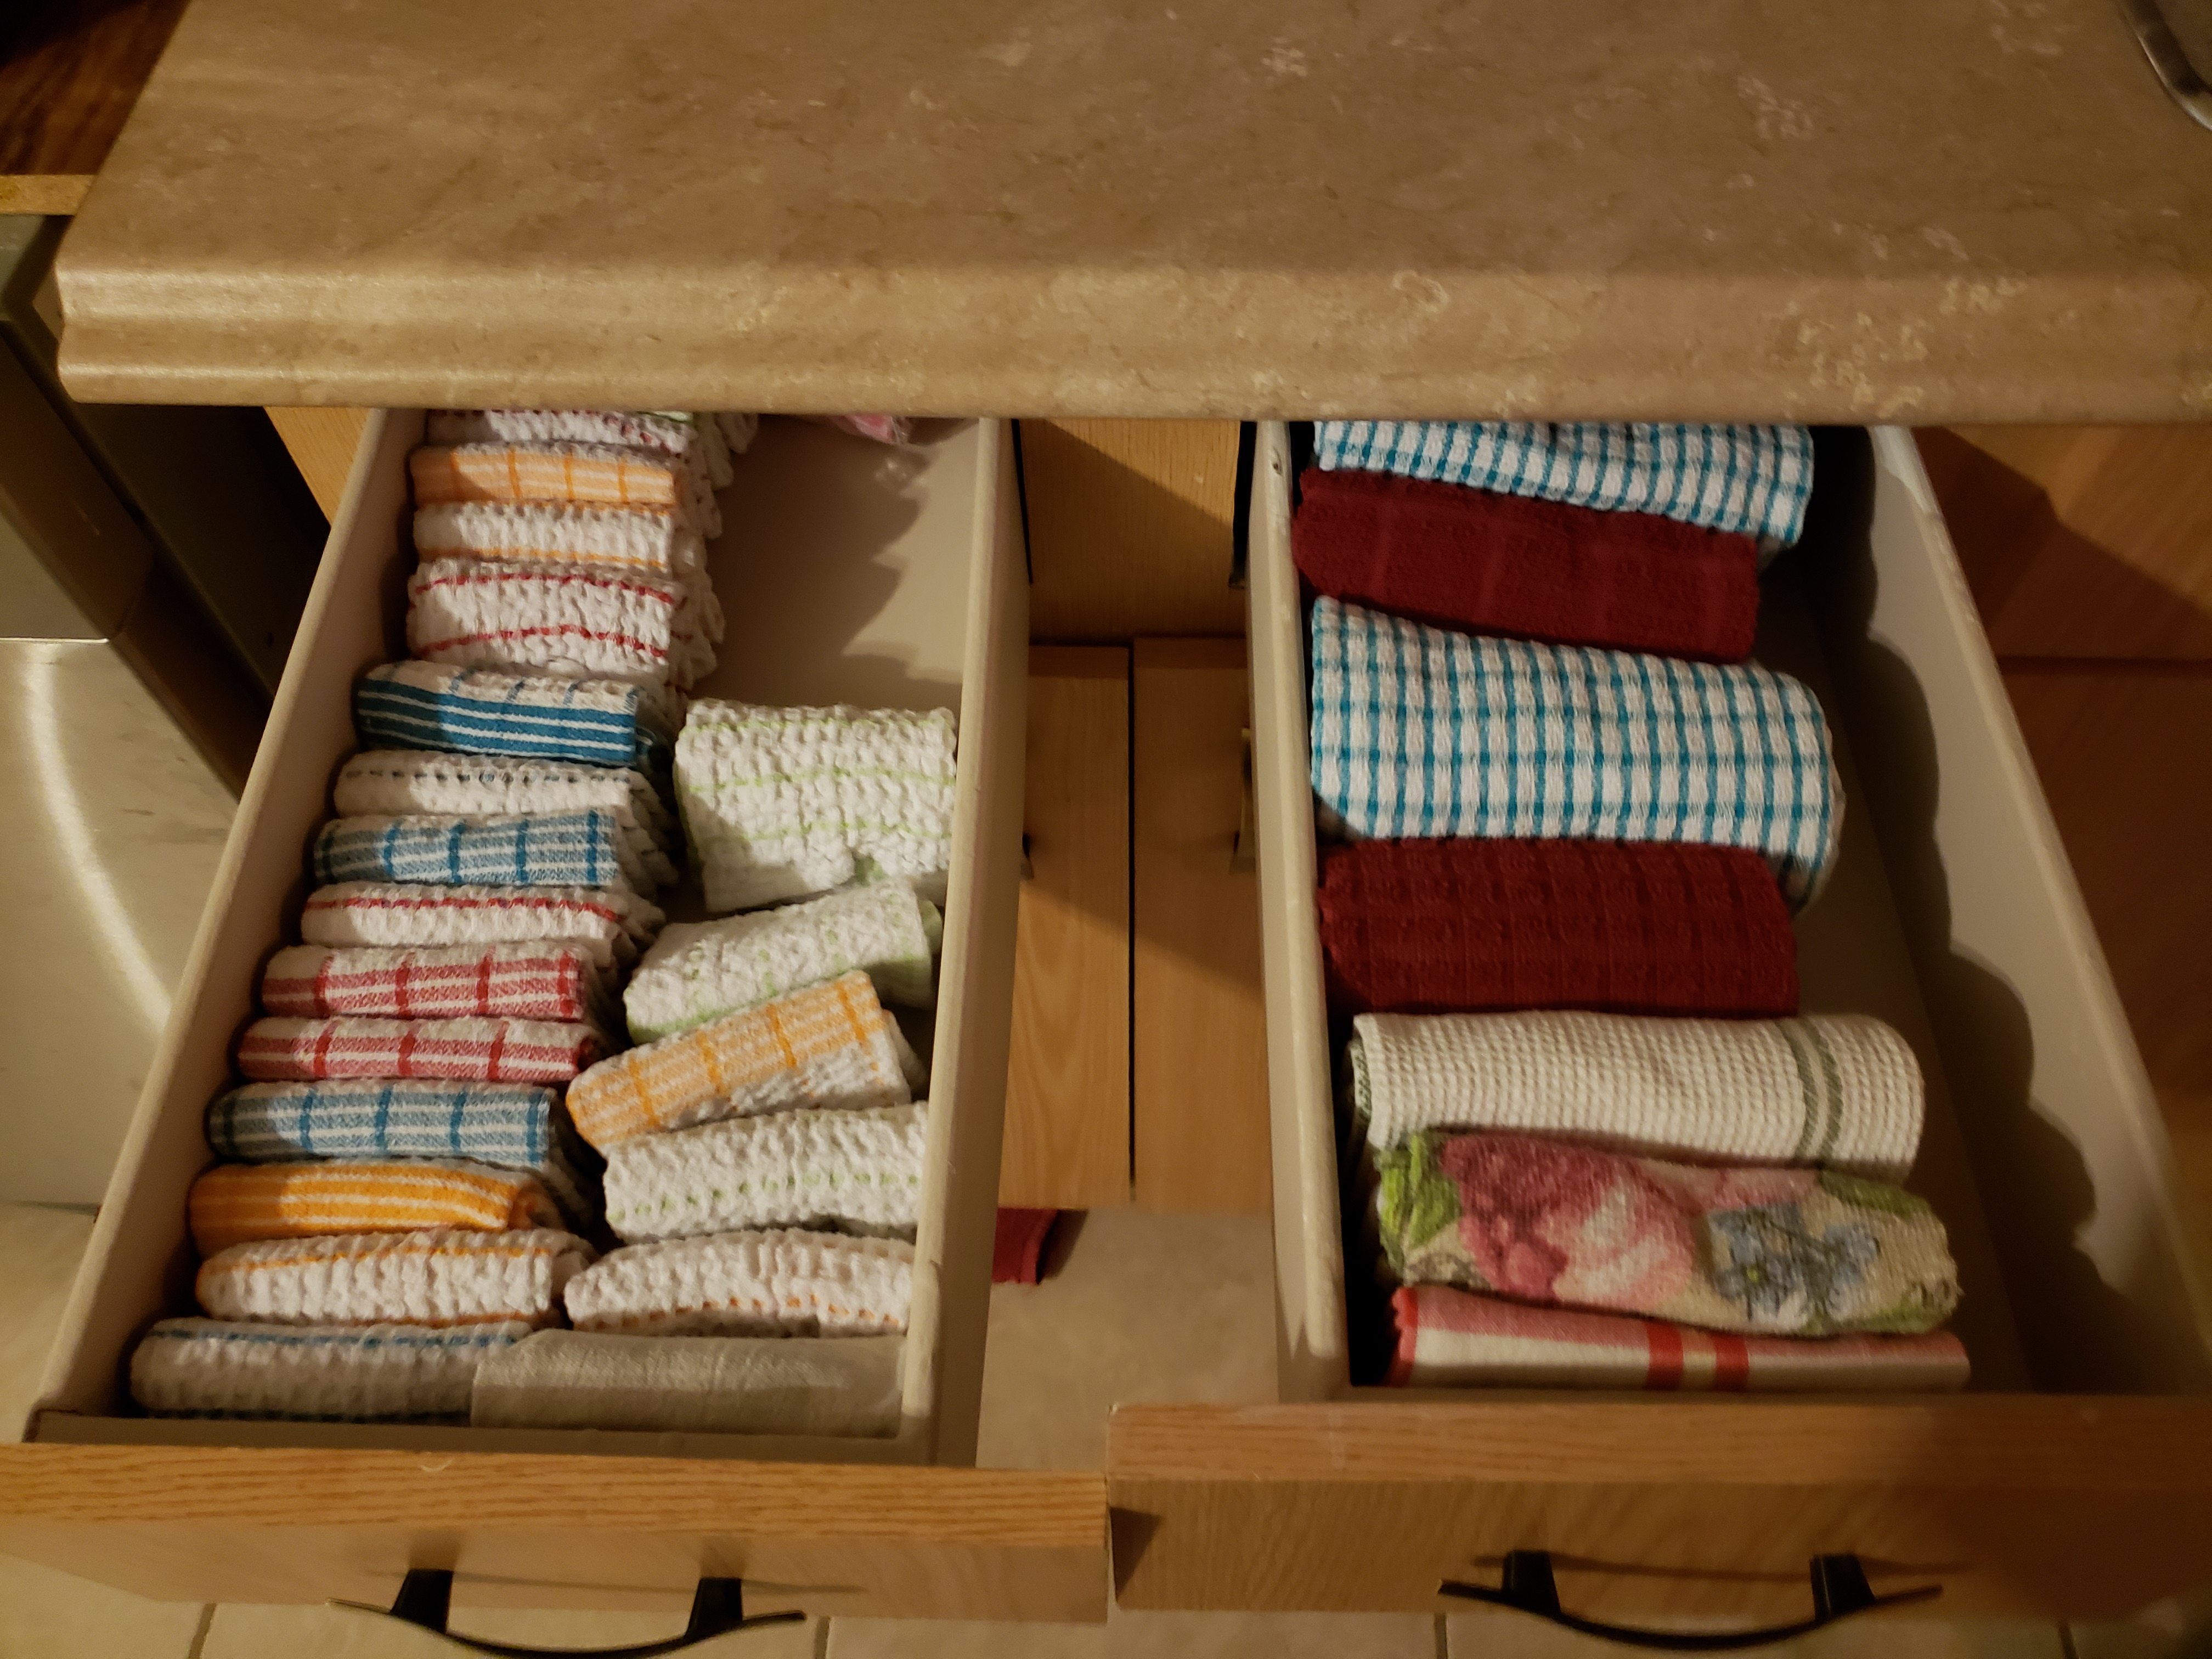 Watch Konmari Folding For Towels And Washcloths My Marie Kondo Journey To Tidy Up And Spark Joy On Youtube Gyst2020